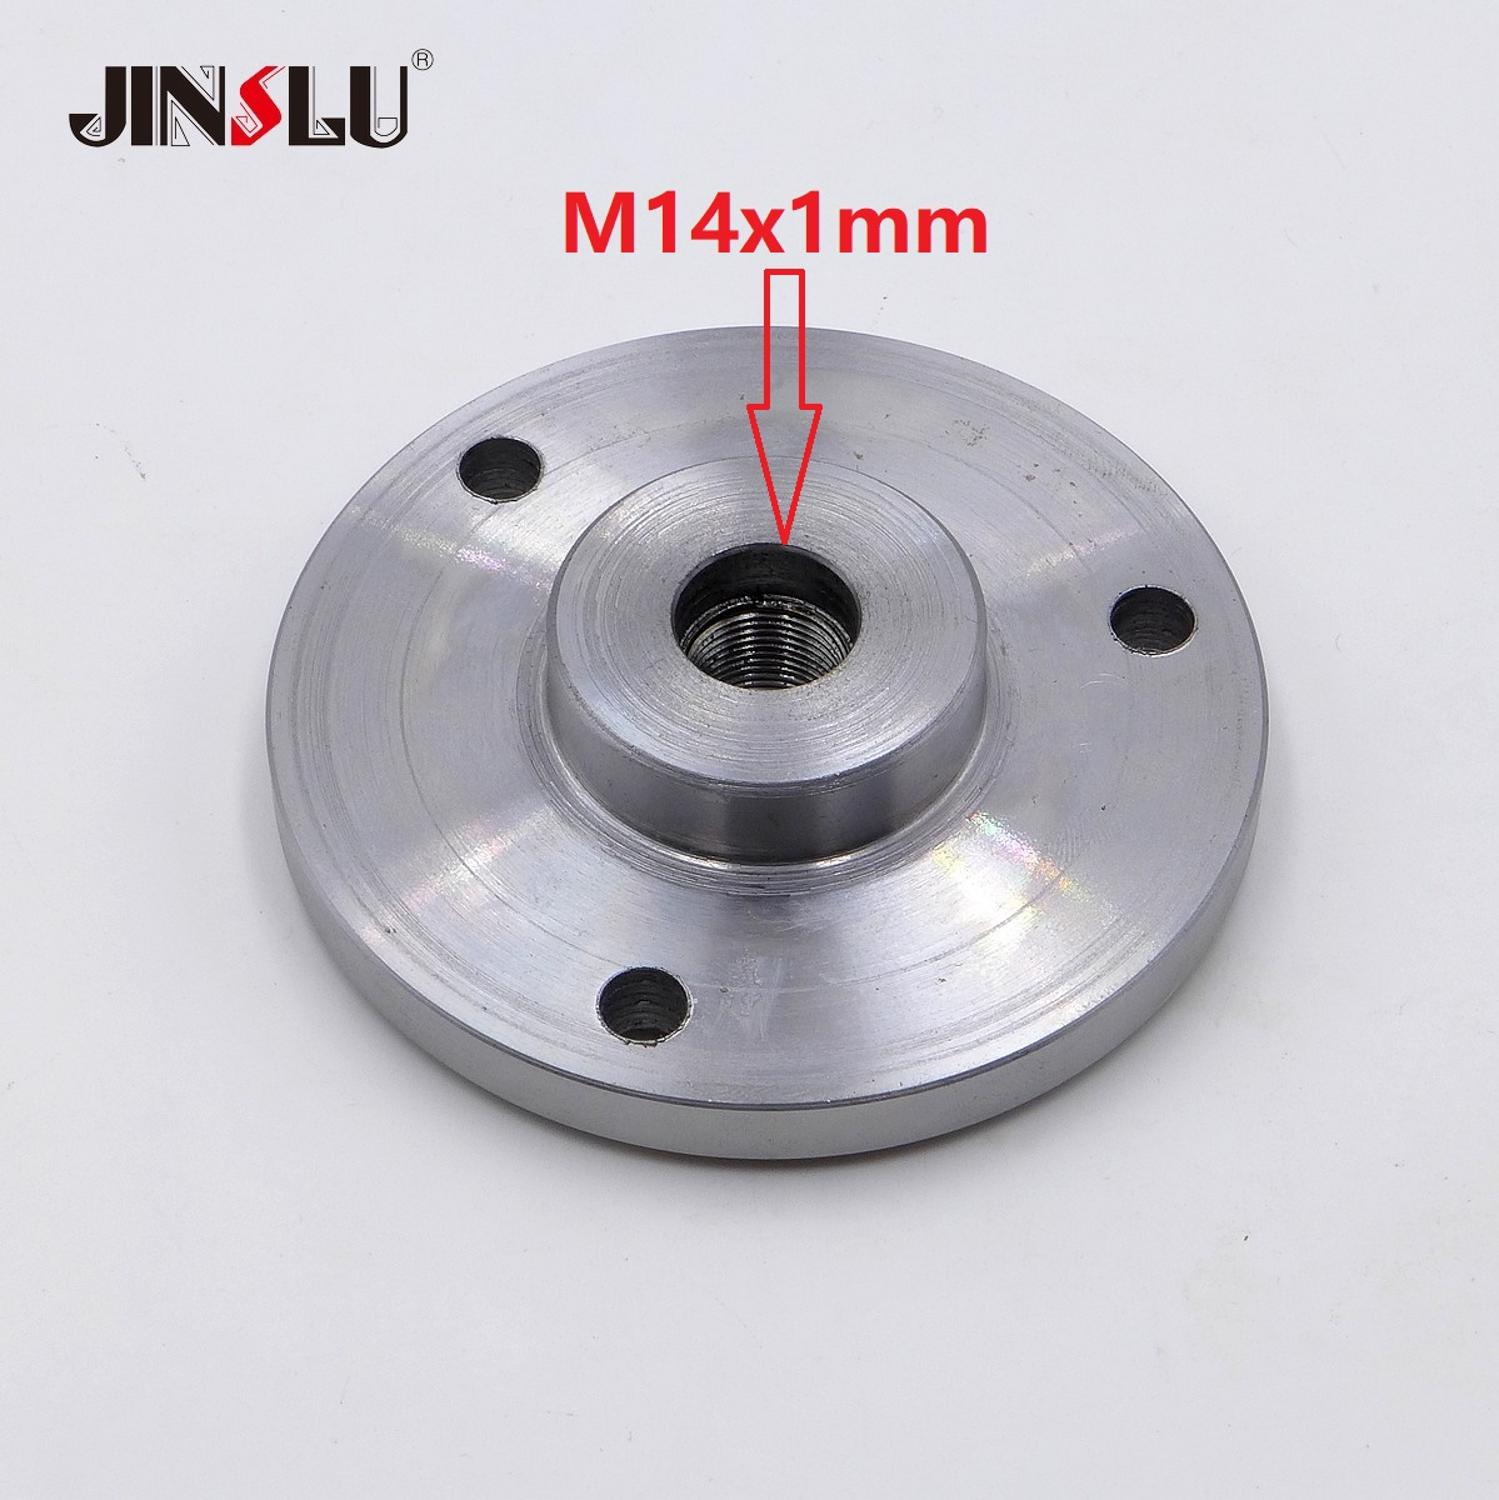 M14x1mm M14 Spindle Thread Chuck Flange Back Plate Base Plate Adapter Plate K11-80 K12-80  K11-100 K12-100  K11-125 K12-125